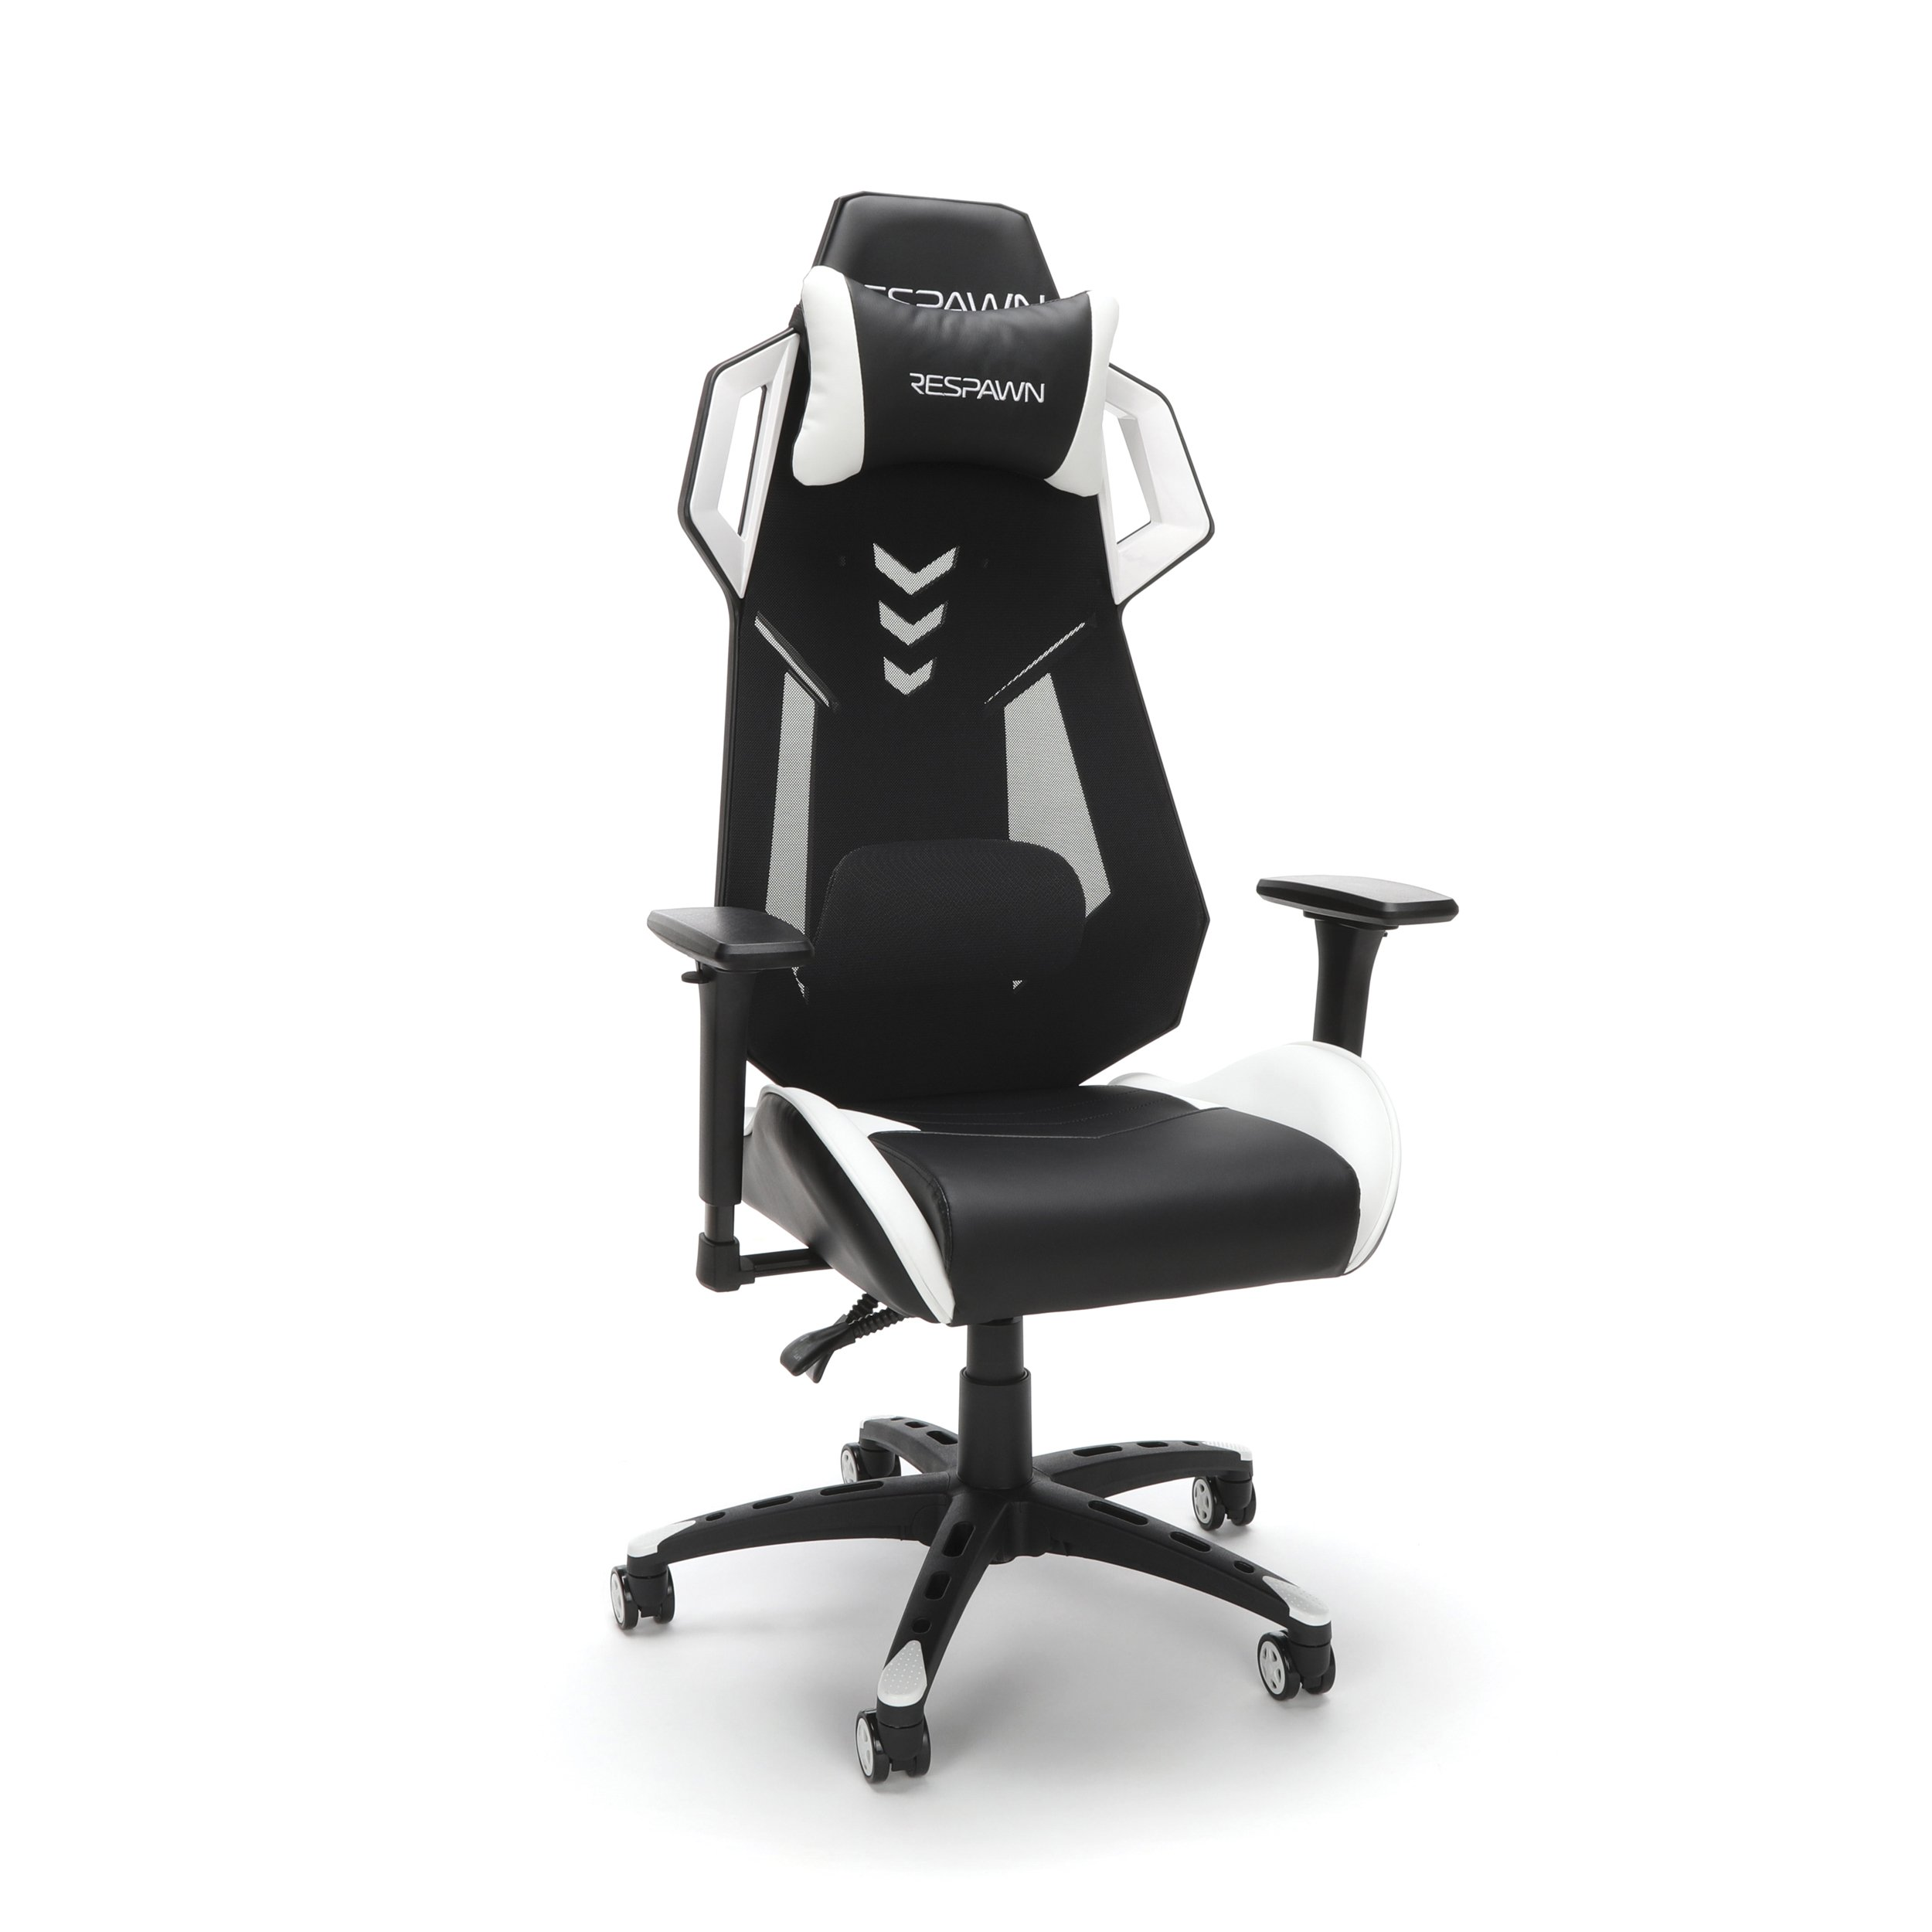 RESPAWN Gaming Chair, White by RESPAWN